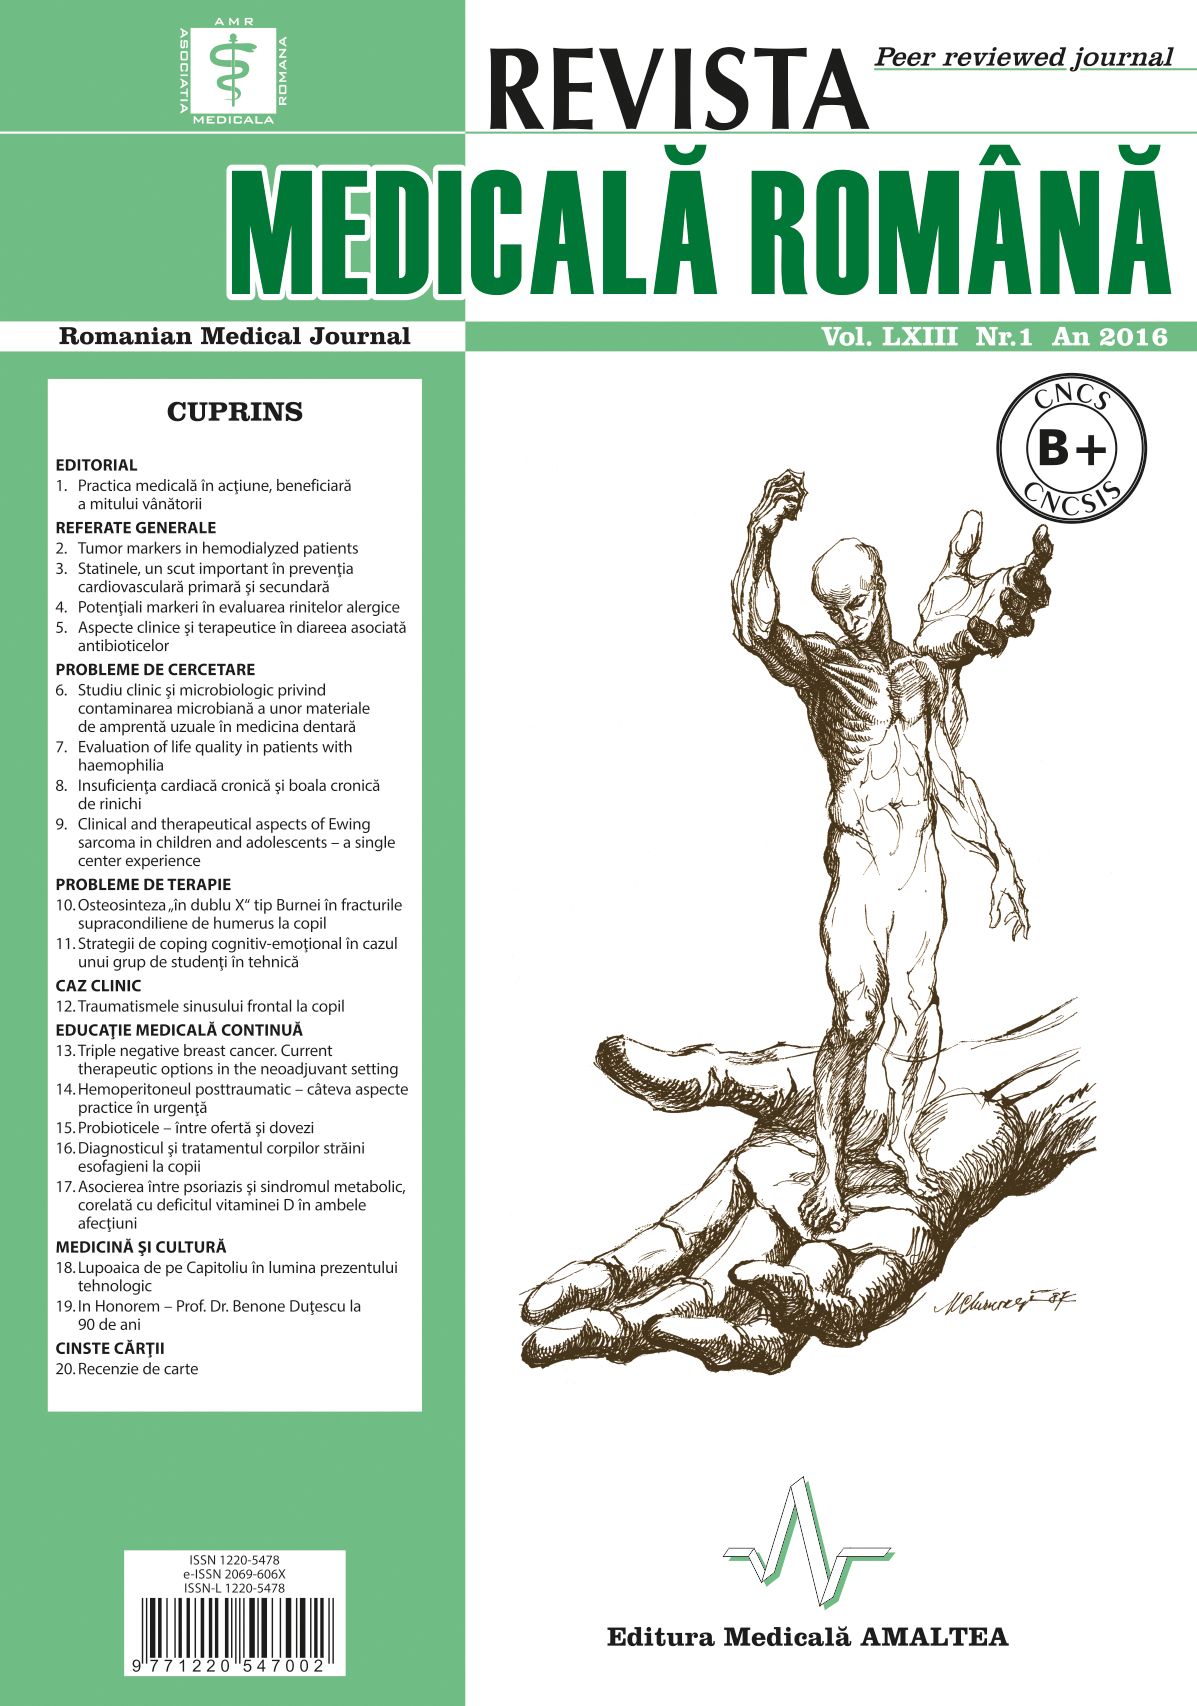 REVISTA MEDICALA ROMANA - Romanian Medical Journal, Vol. LXIII, Nr. 1, An 2016